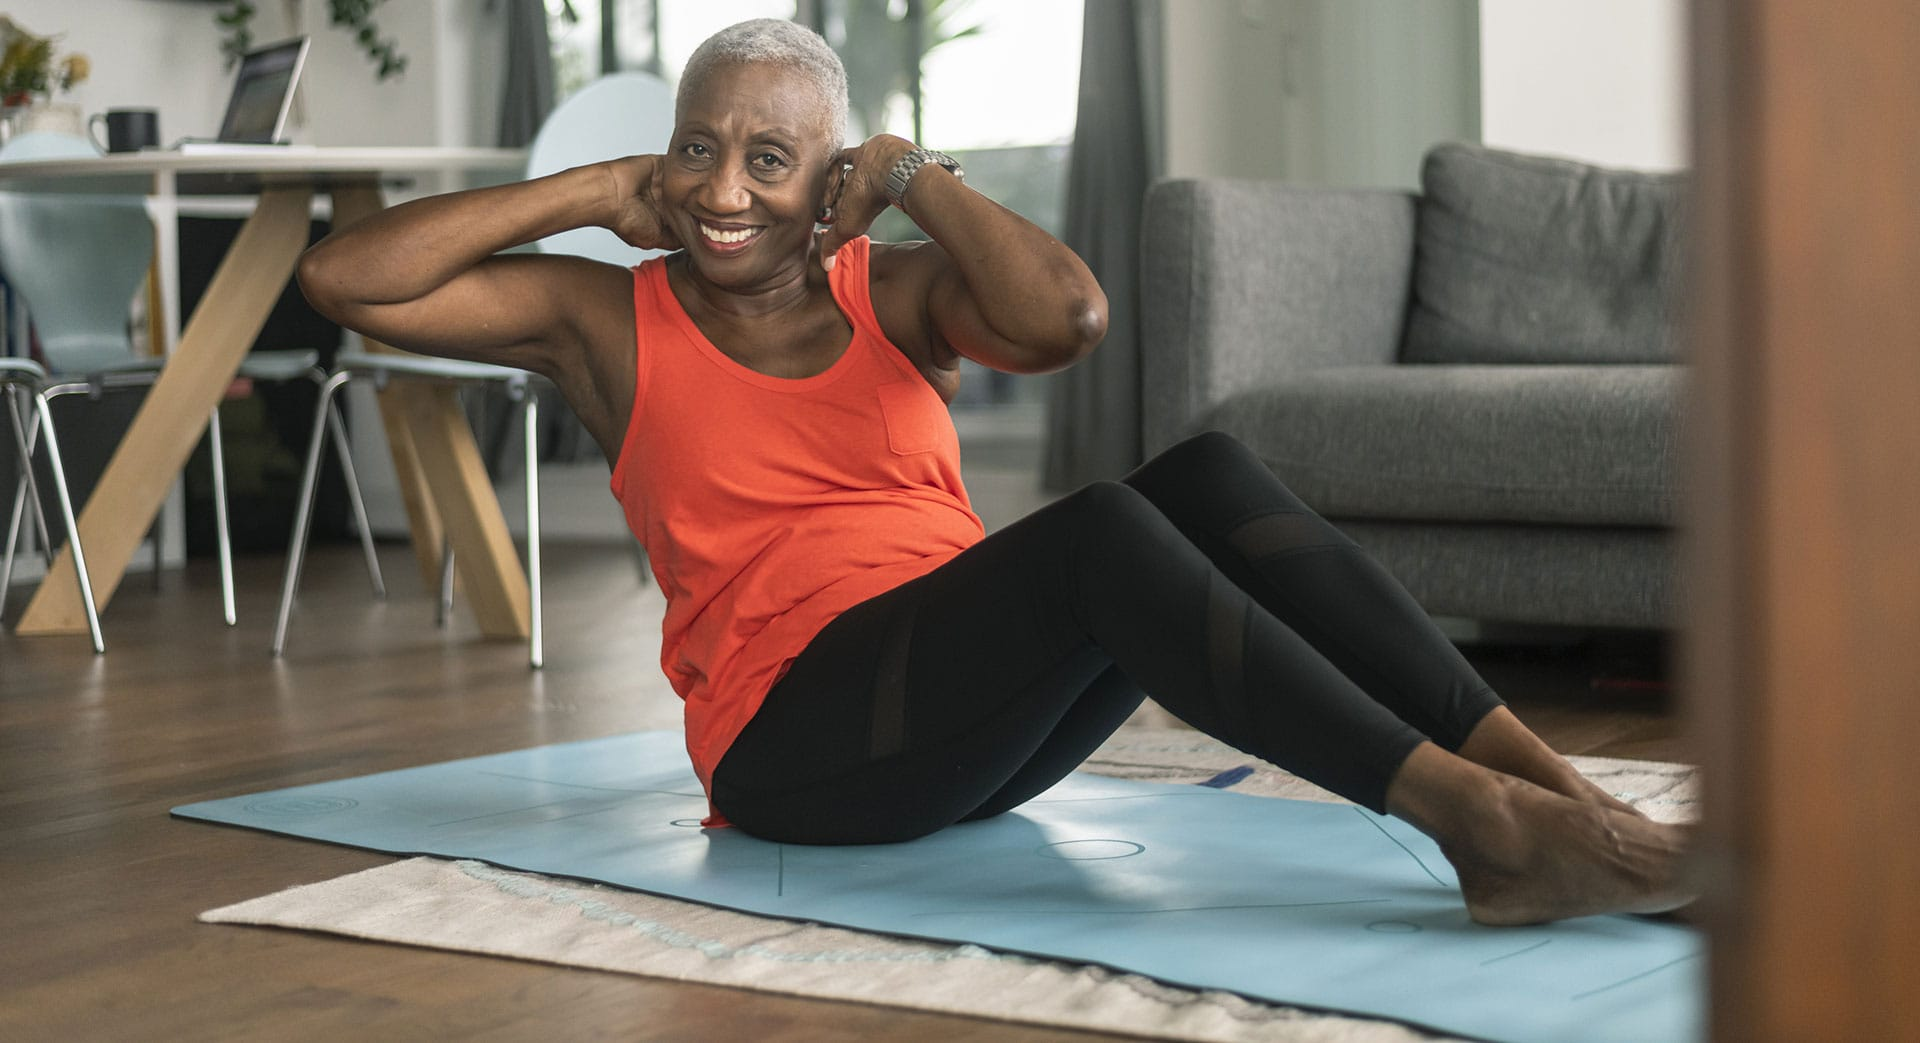 Photo of woman doing exercises on mat.